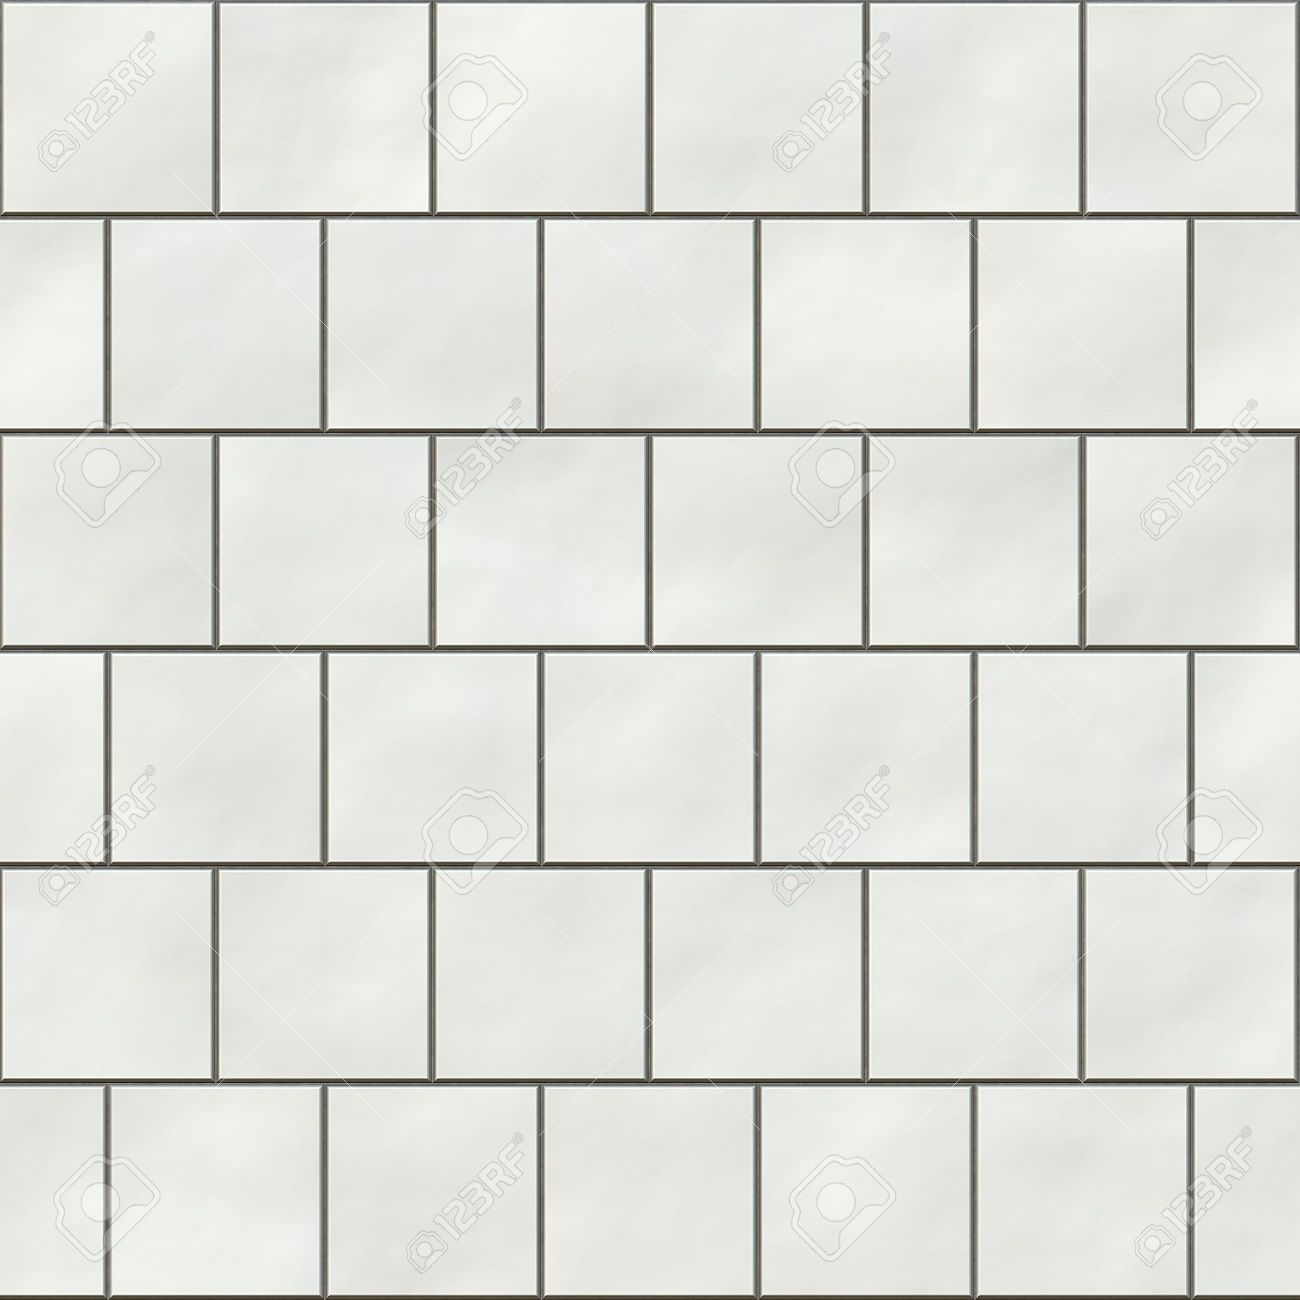 Seamless White Square Tiles Texture In An English Style White Square Tiles Square Tile Tiles Texture